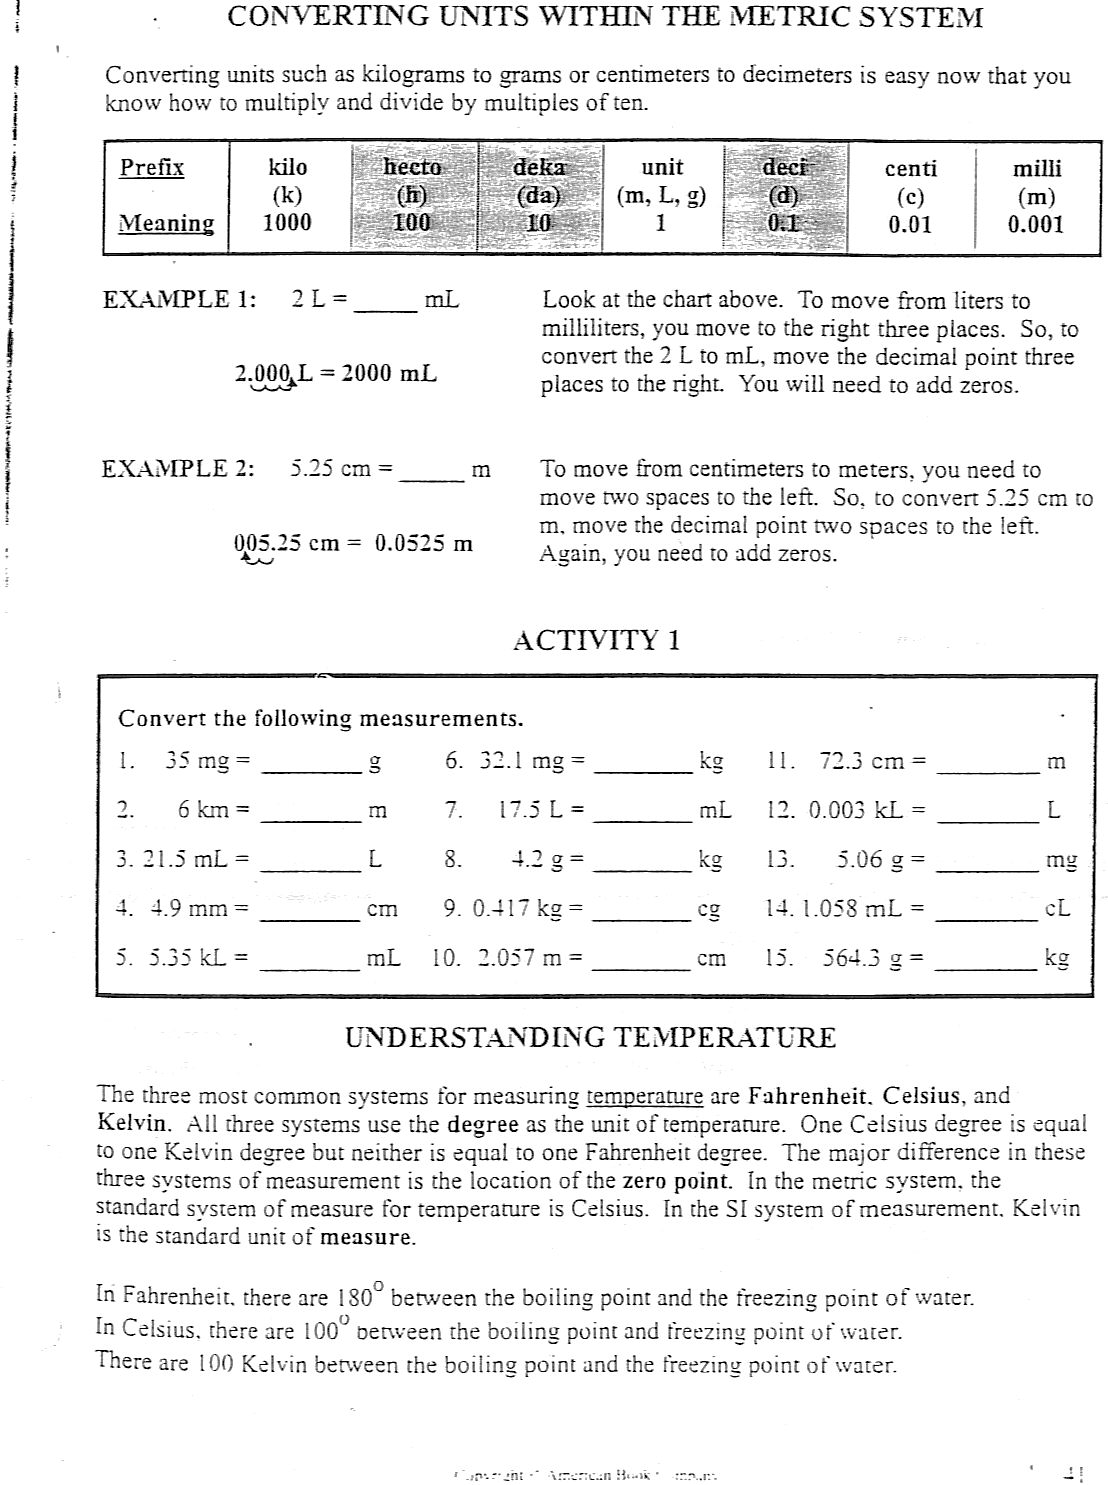 29 Metric System Review Worksheet